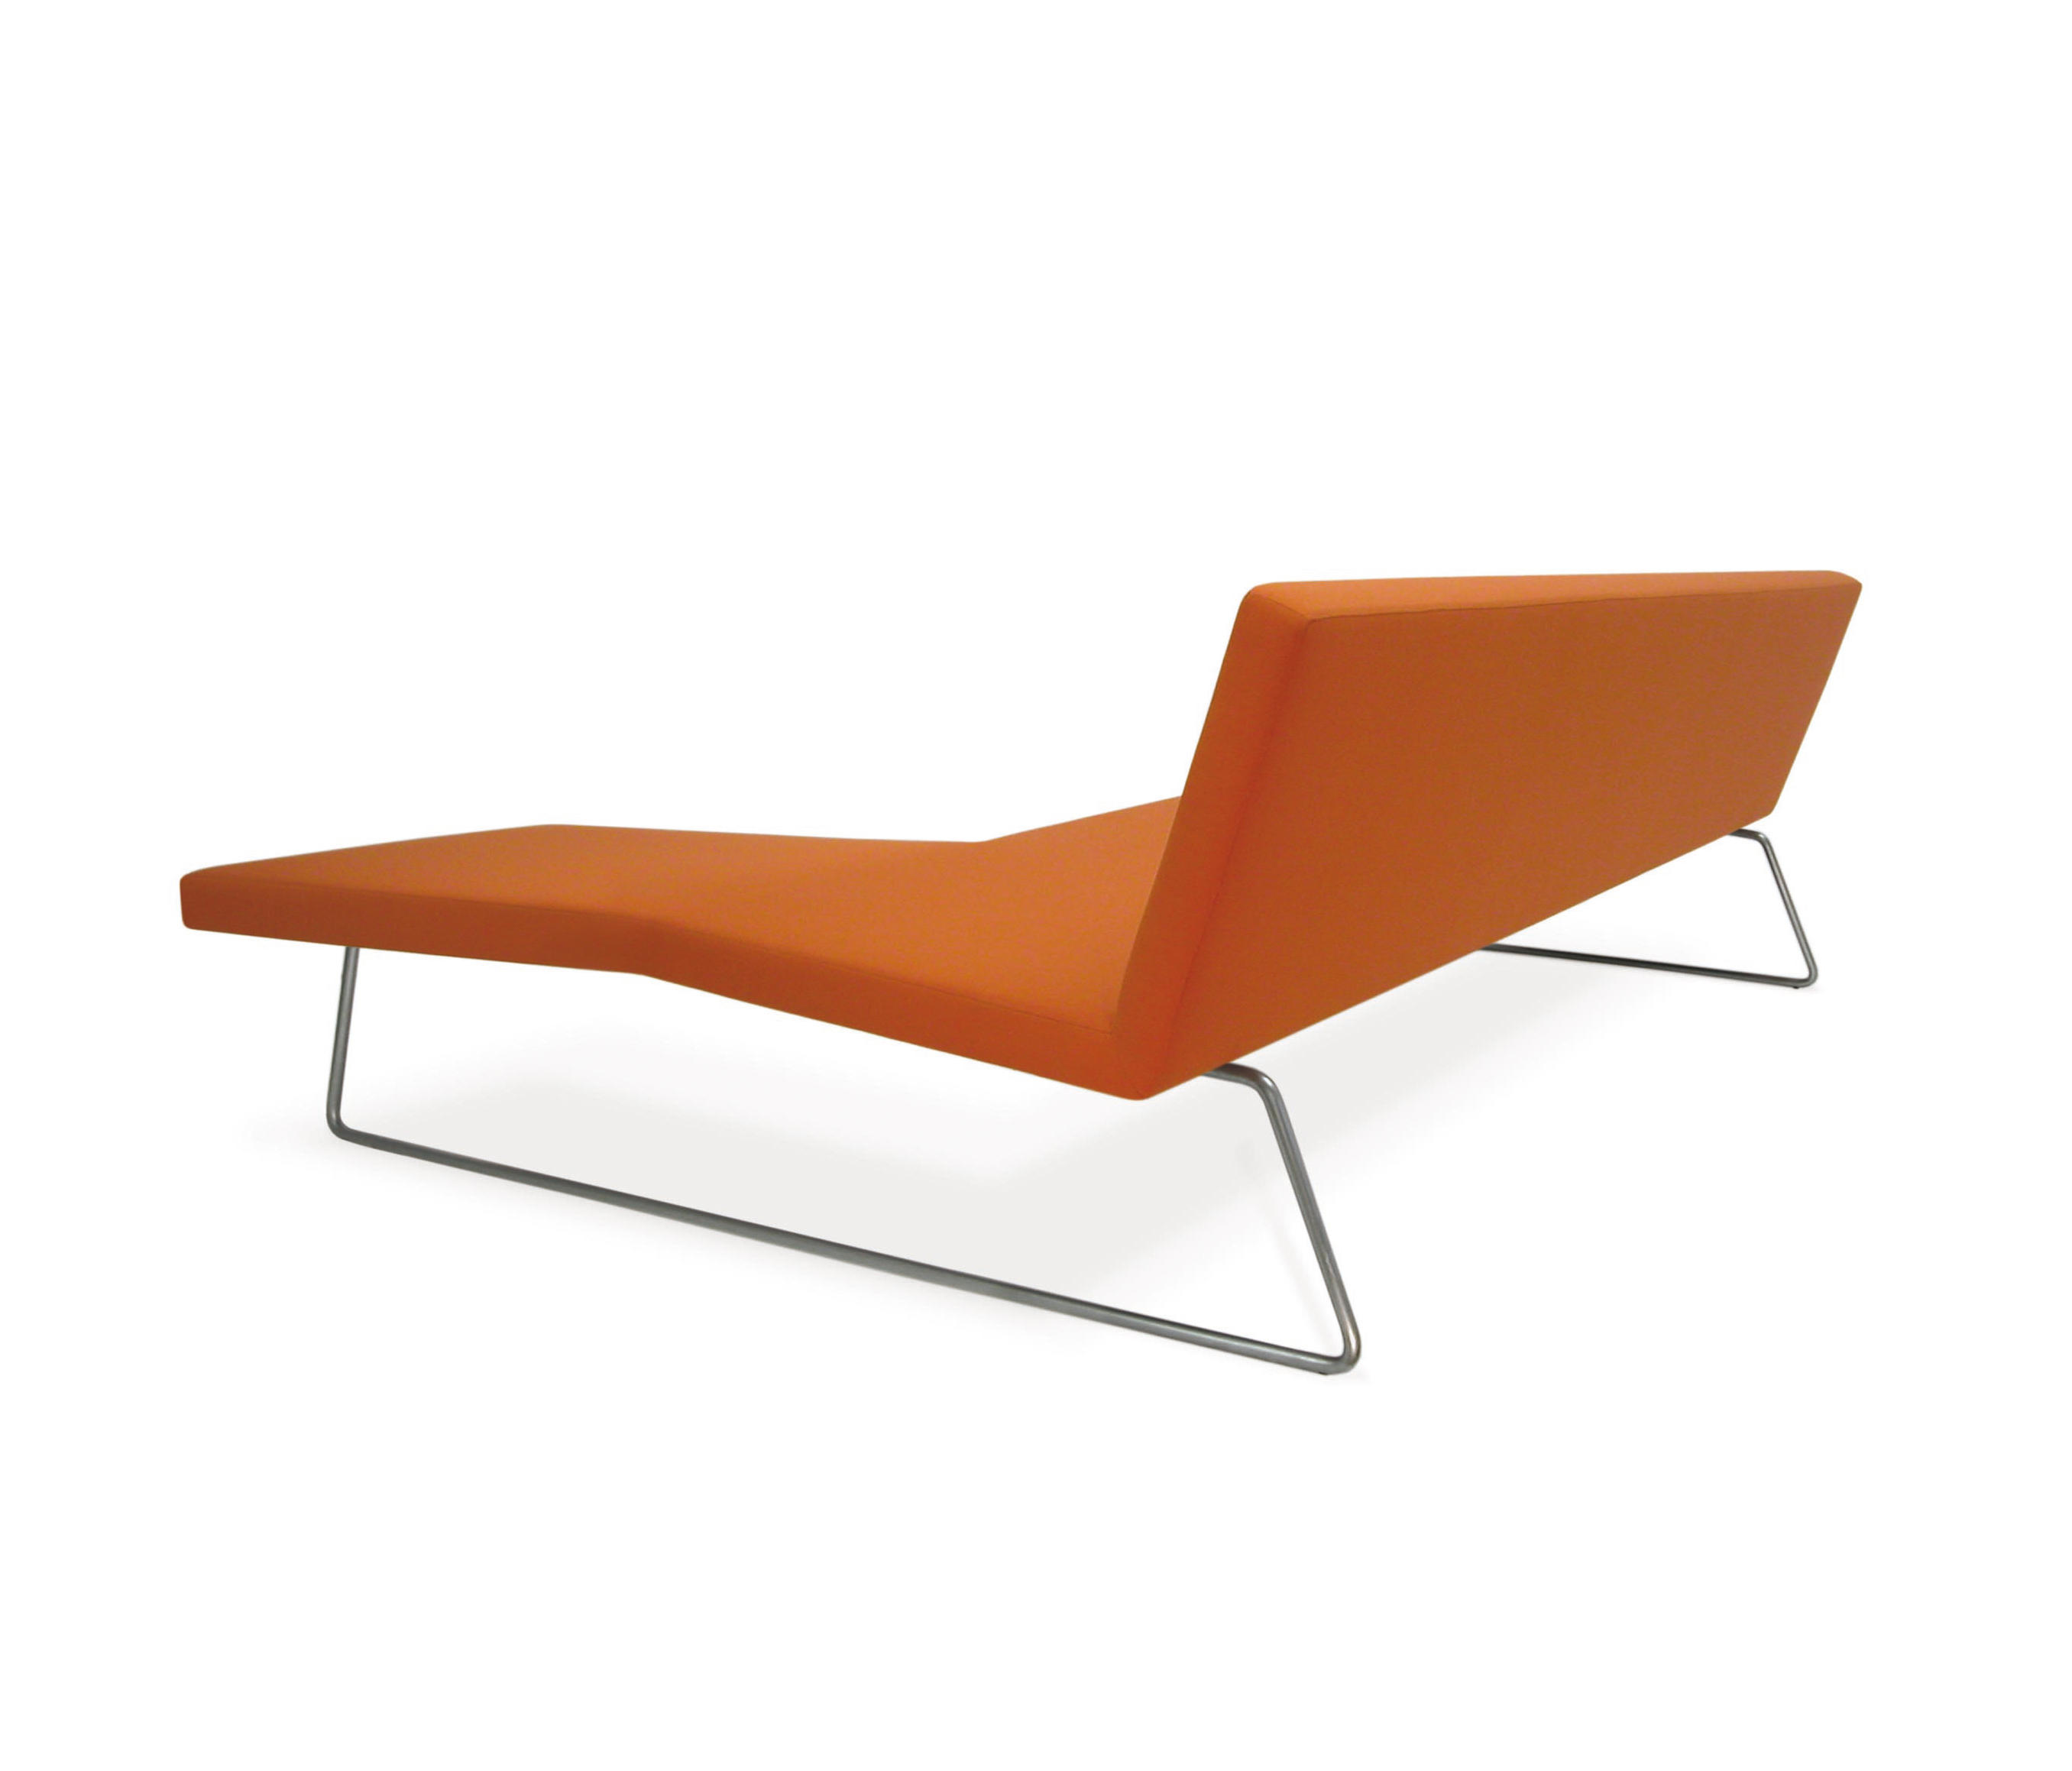 Pleasing Slim Sofa Sofas From Piuric Architonic Alphanode Cool Chair Designs And Ideas Alphanodeonline